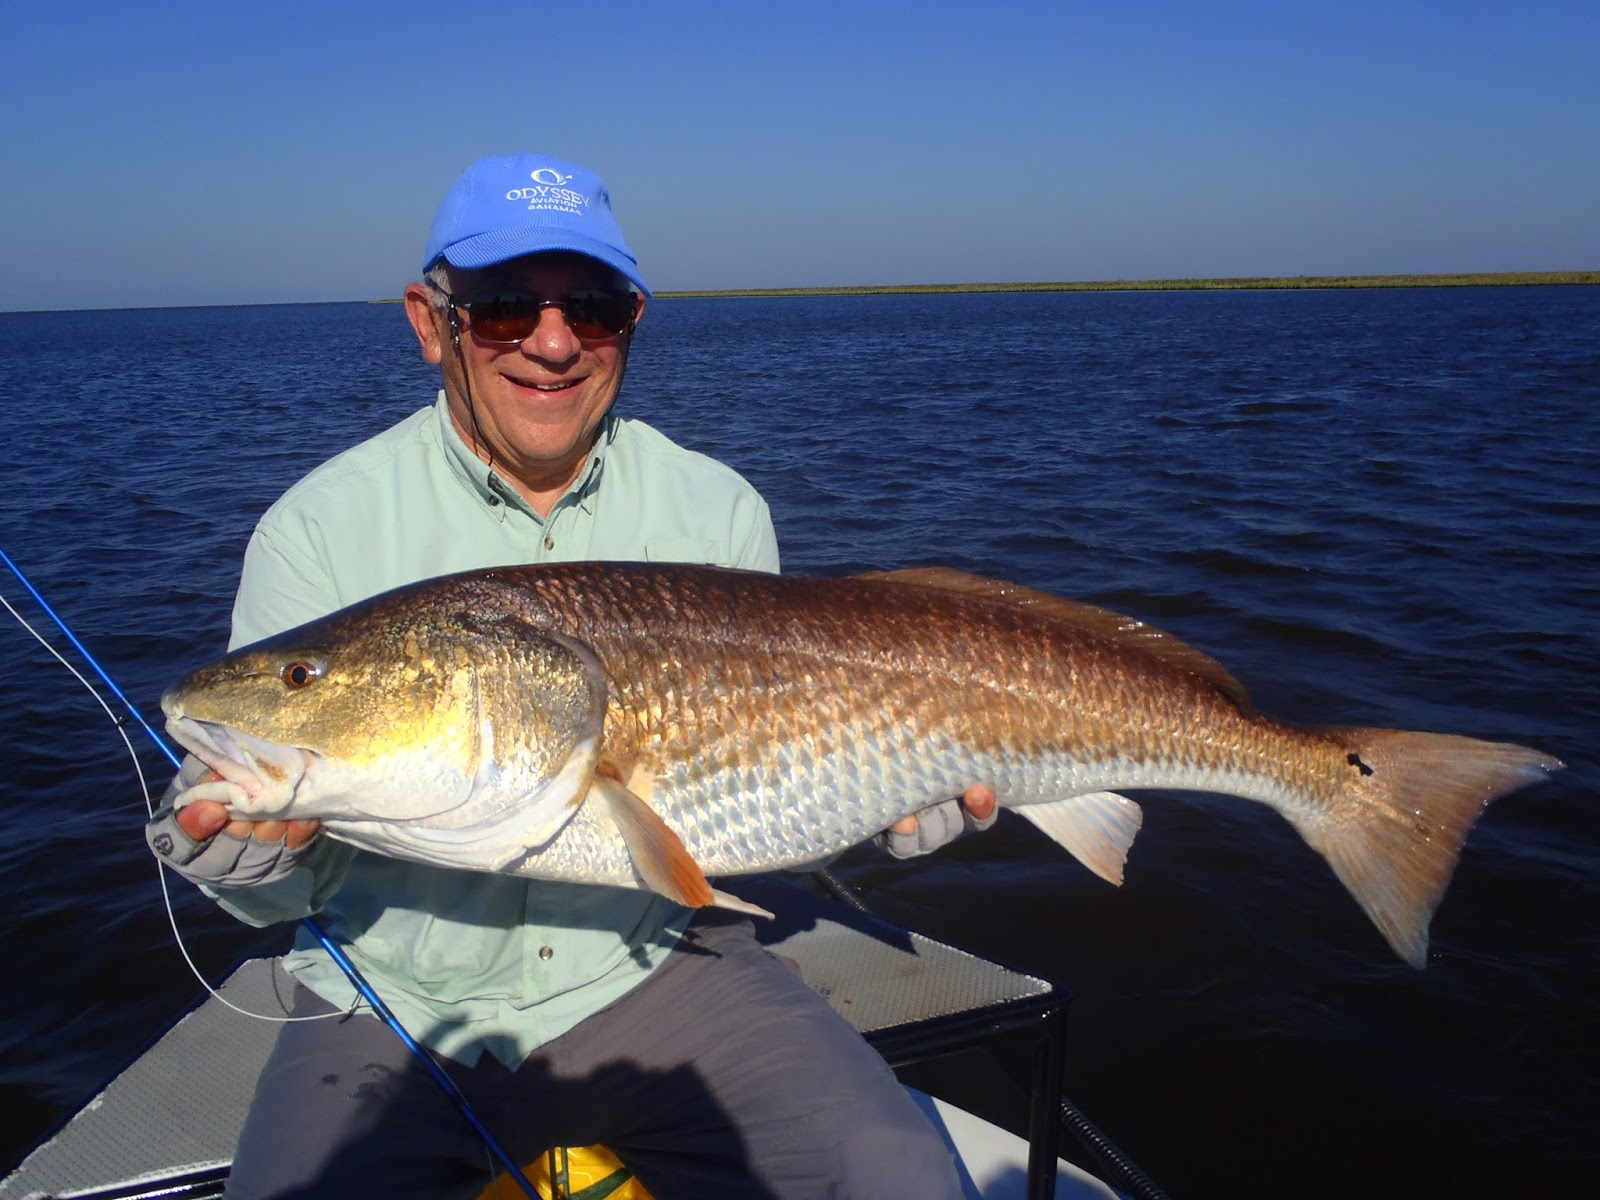 Redfishing louisiana a guides journey louisiana redfish for Louisiana redfish fly fishing